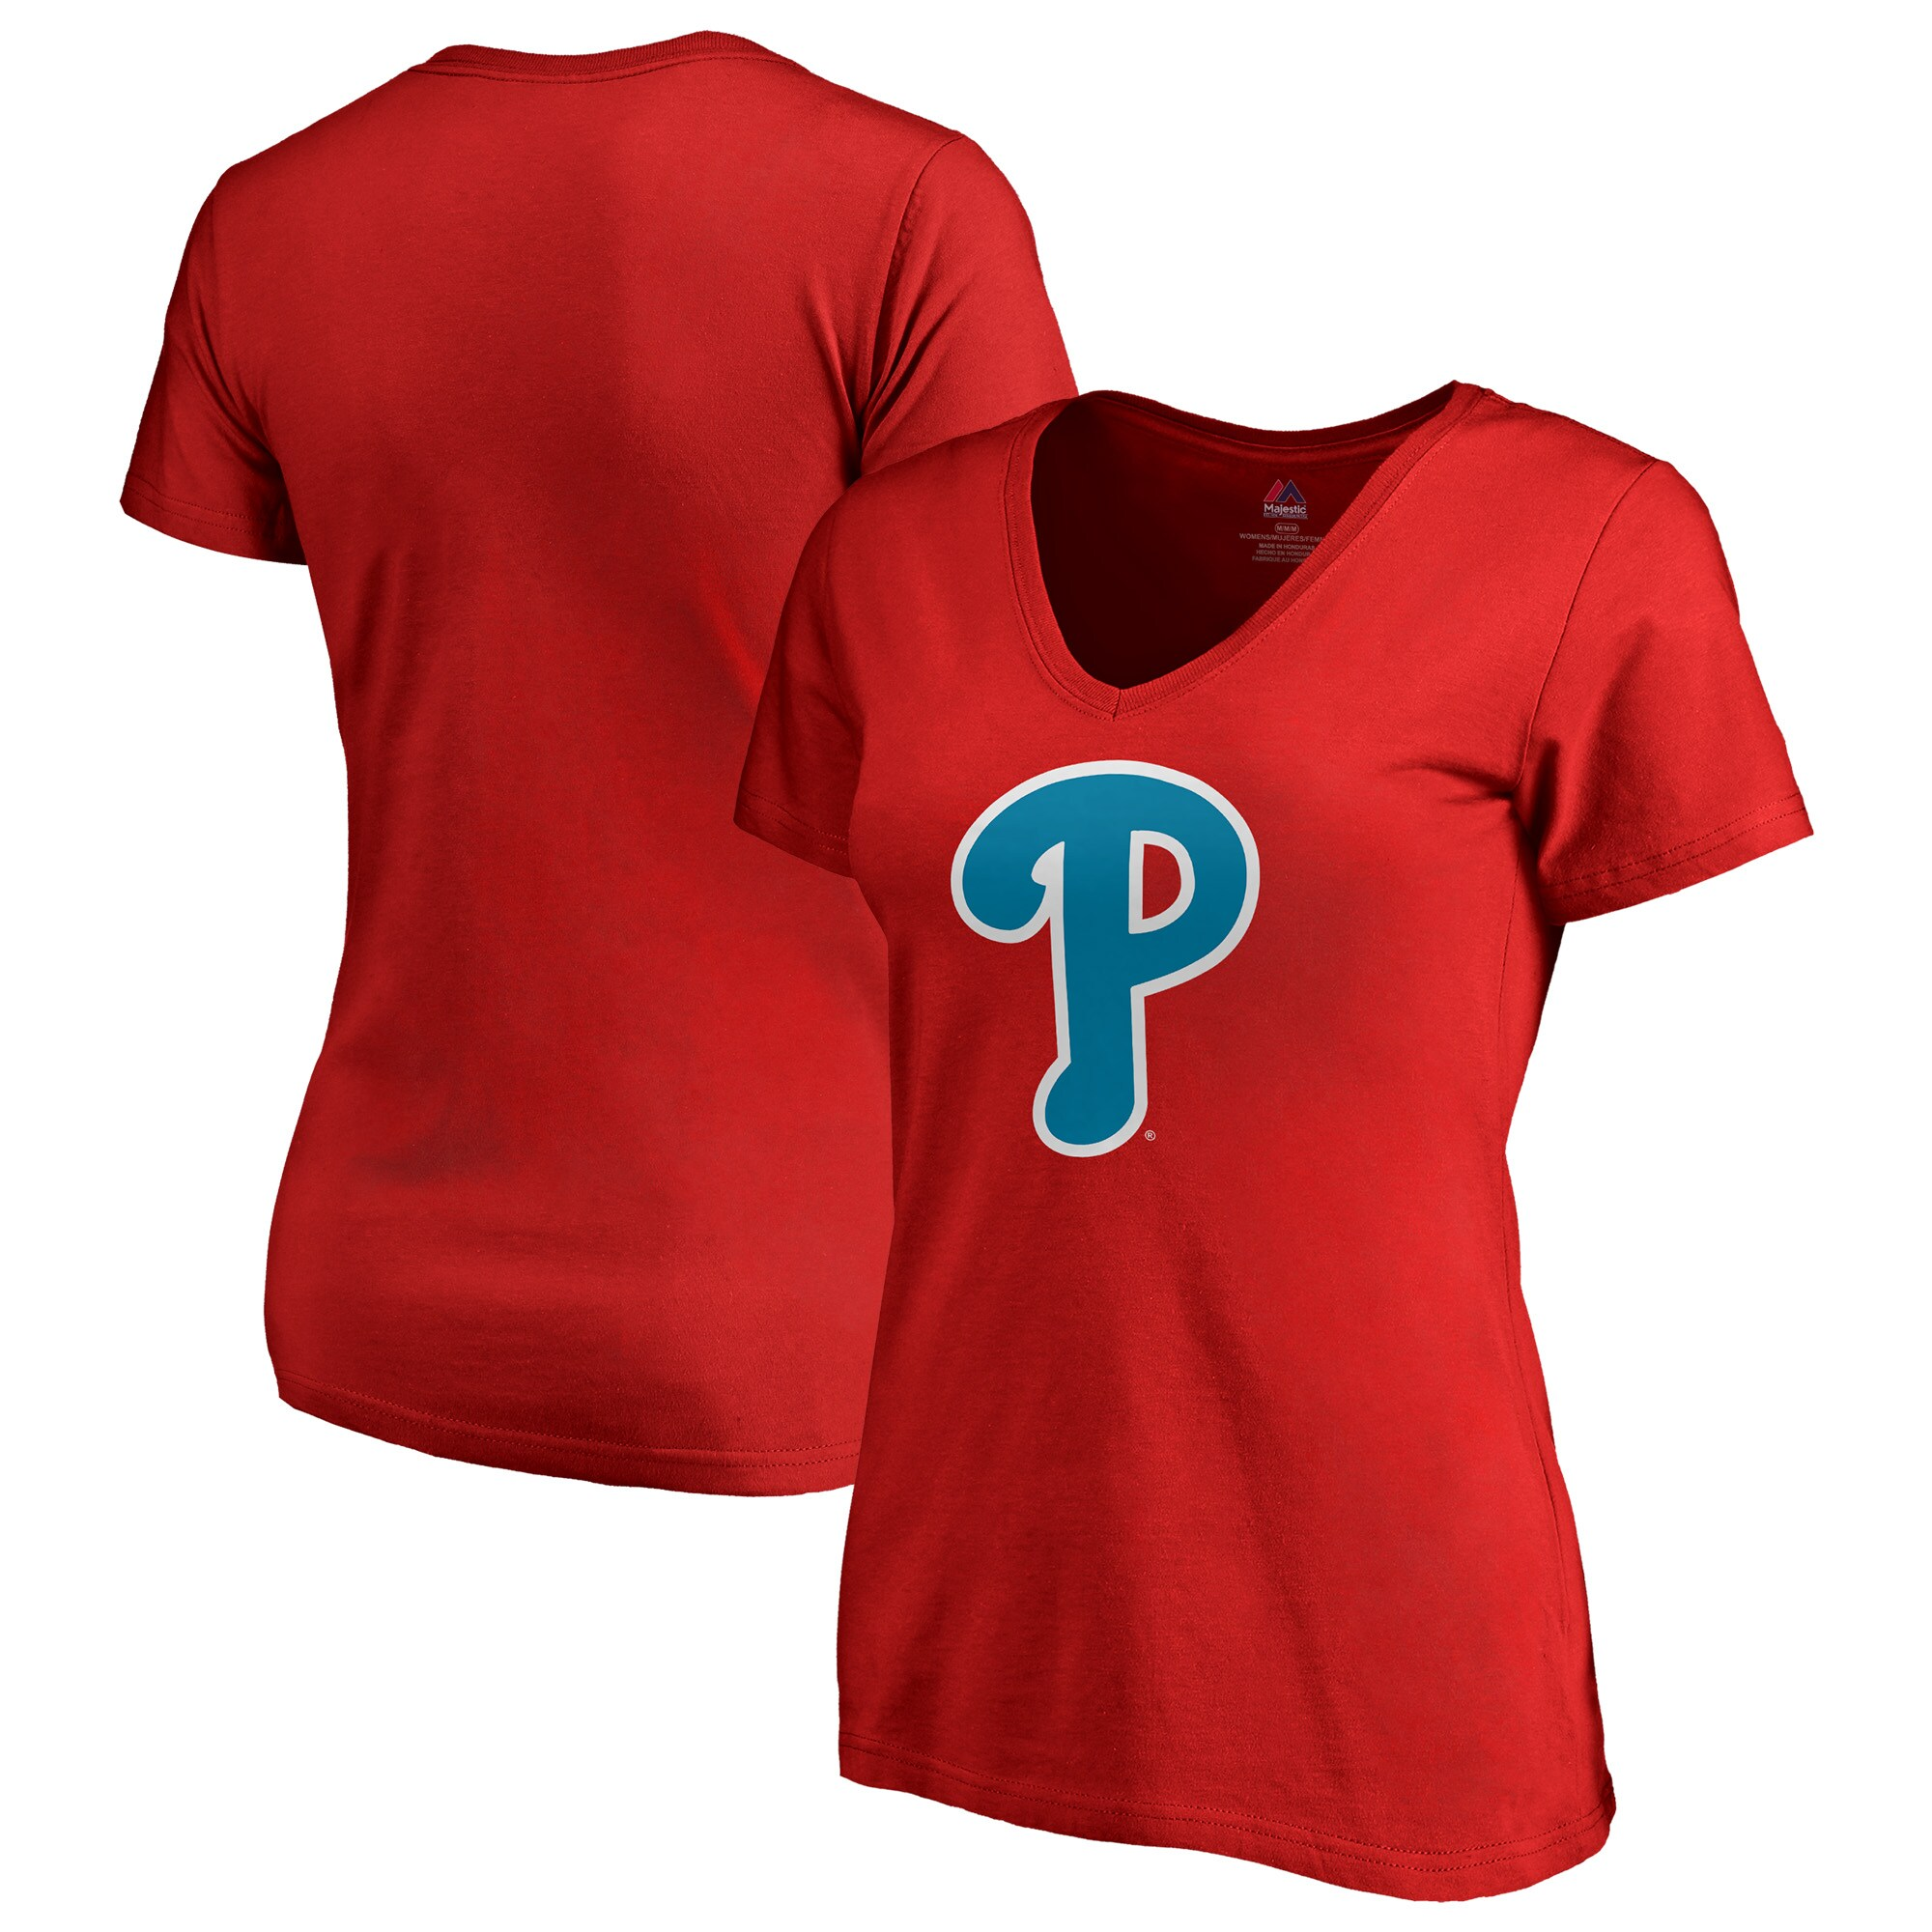 Philadelphia Phillies Majestic Women's 2018 Players' Weekend V-Neck T-Shirt - Red